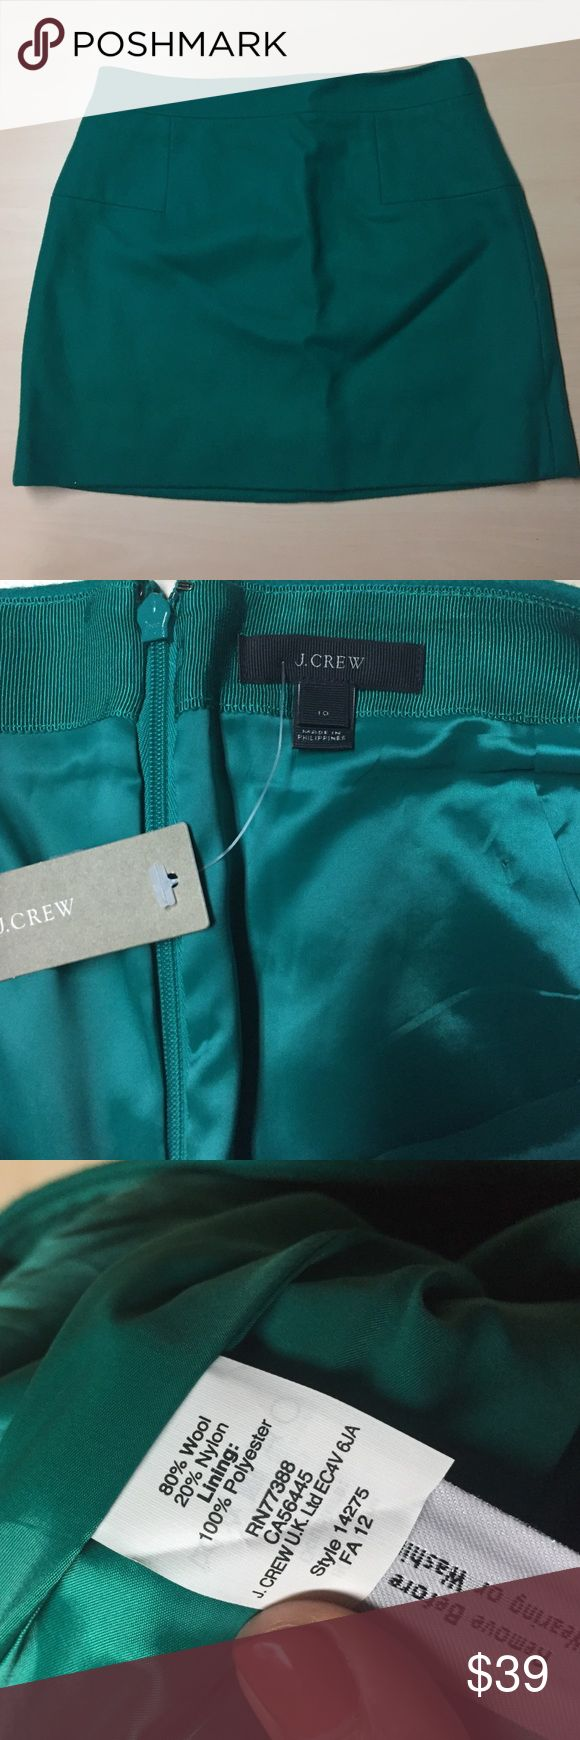 """NWT Bright Emerald Green Wool Mini - 10 NWT Bright Emerald Green Wool Mini - 10 / waist: 16"""" laying flat / 17"""" length/ 20"""" hips laying flat. Note that color is brighter than pictured, super gorgeous and vibrant green. J. Crew Skirts Mini"""